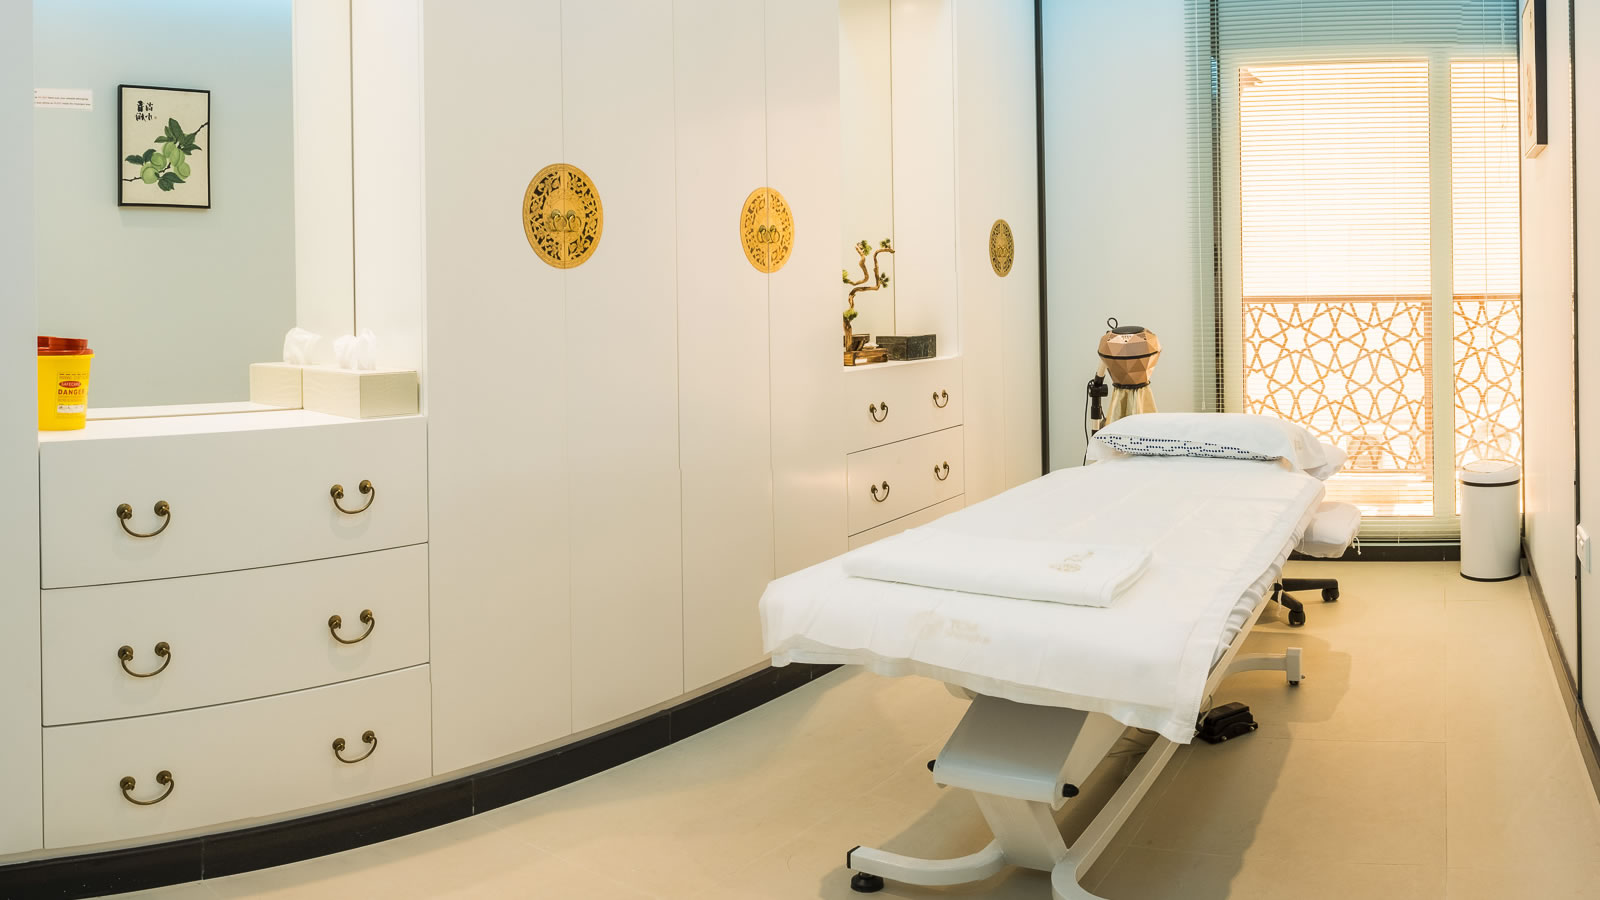 TCM shanghai, traditional Chinese medicine, acupuncture, cupping, massage